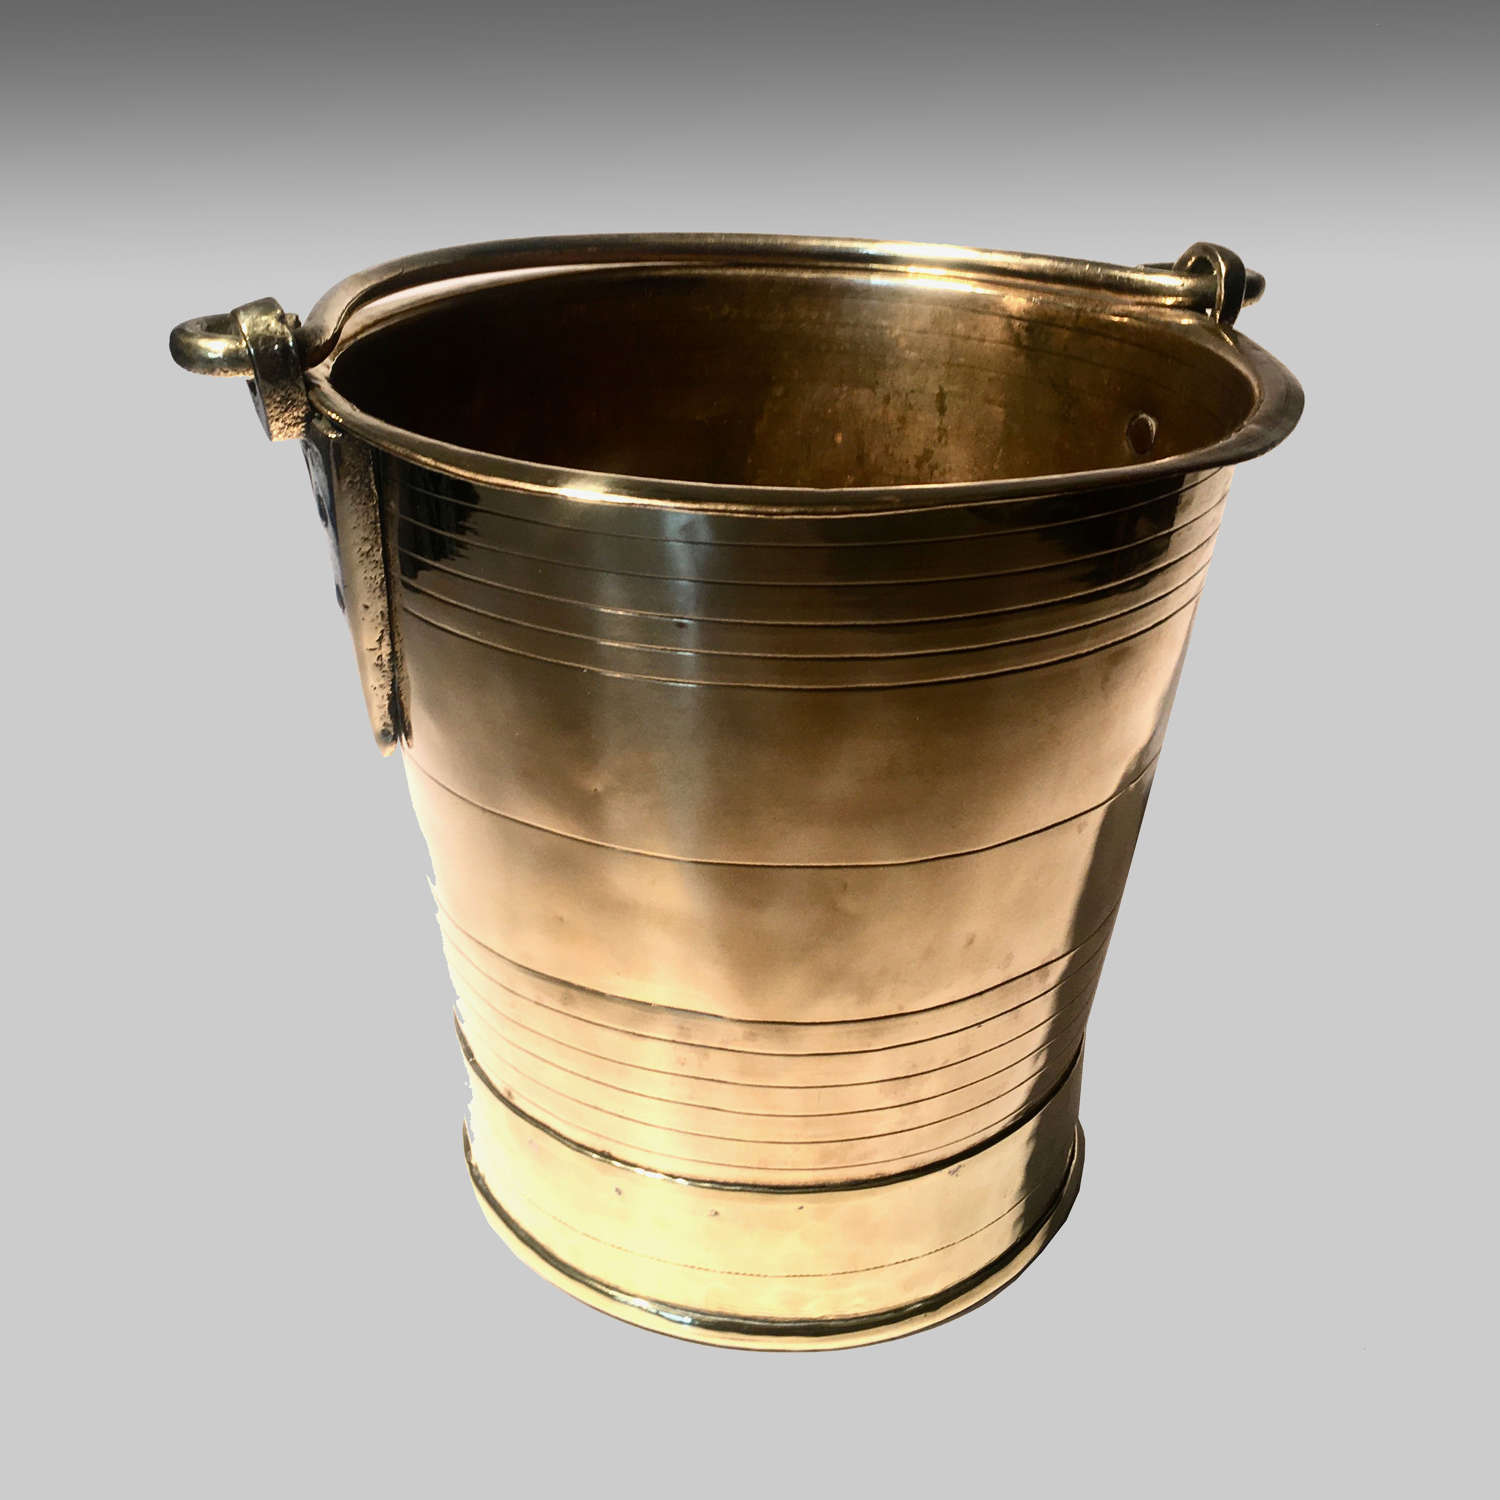 19th century Colonial Indian brass campaign bucket